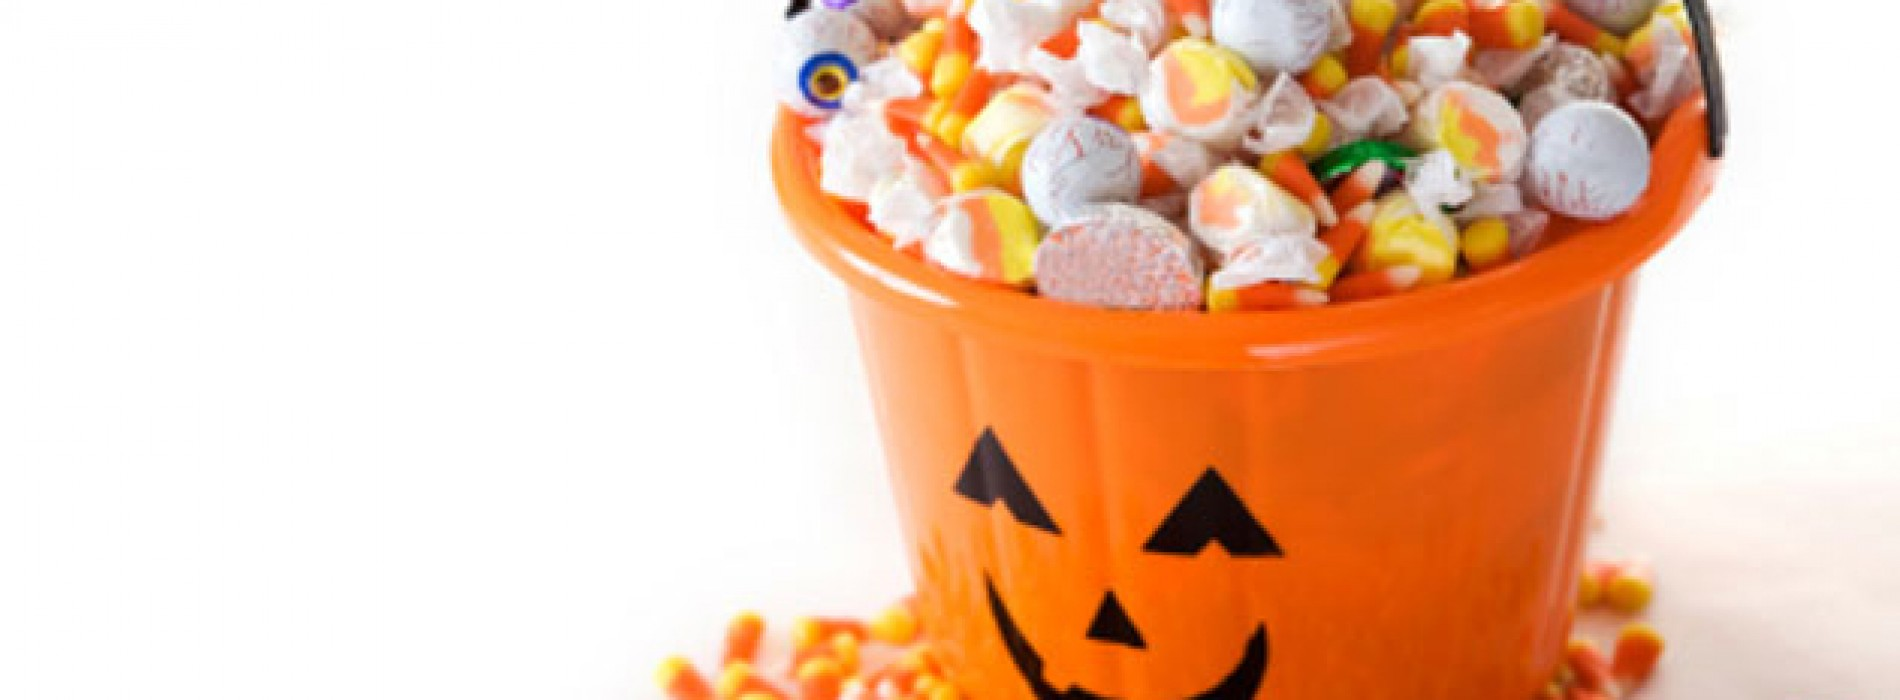 Theresa Albert's Healthy Habits: Halloween is Scarier Than You Know